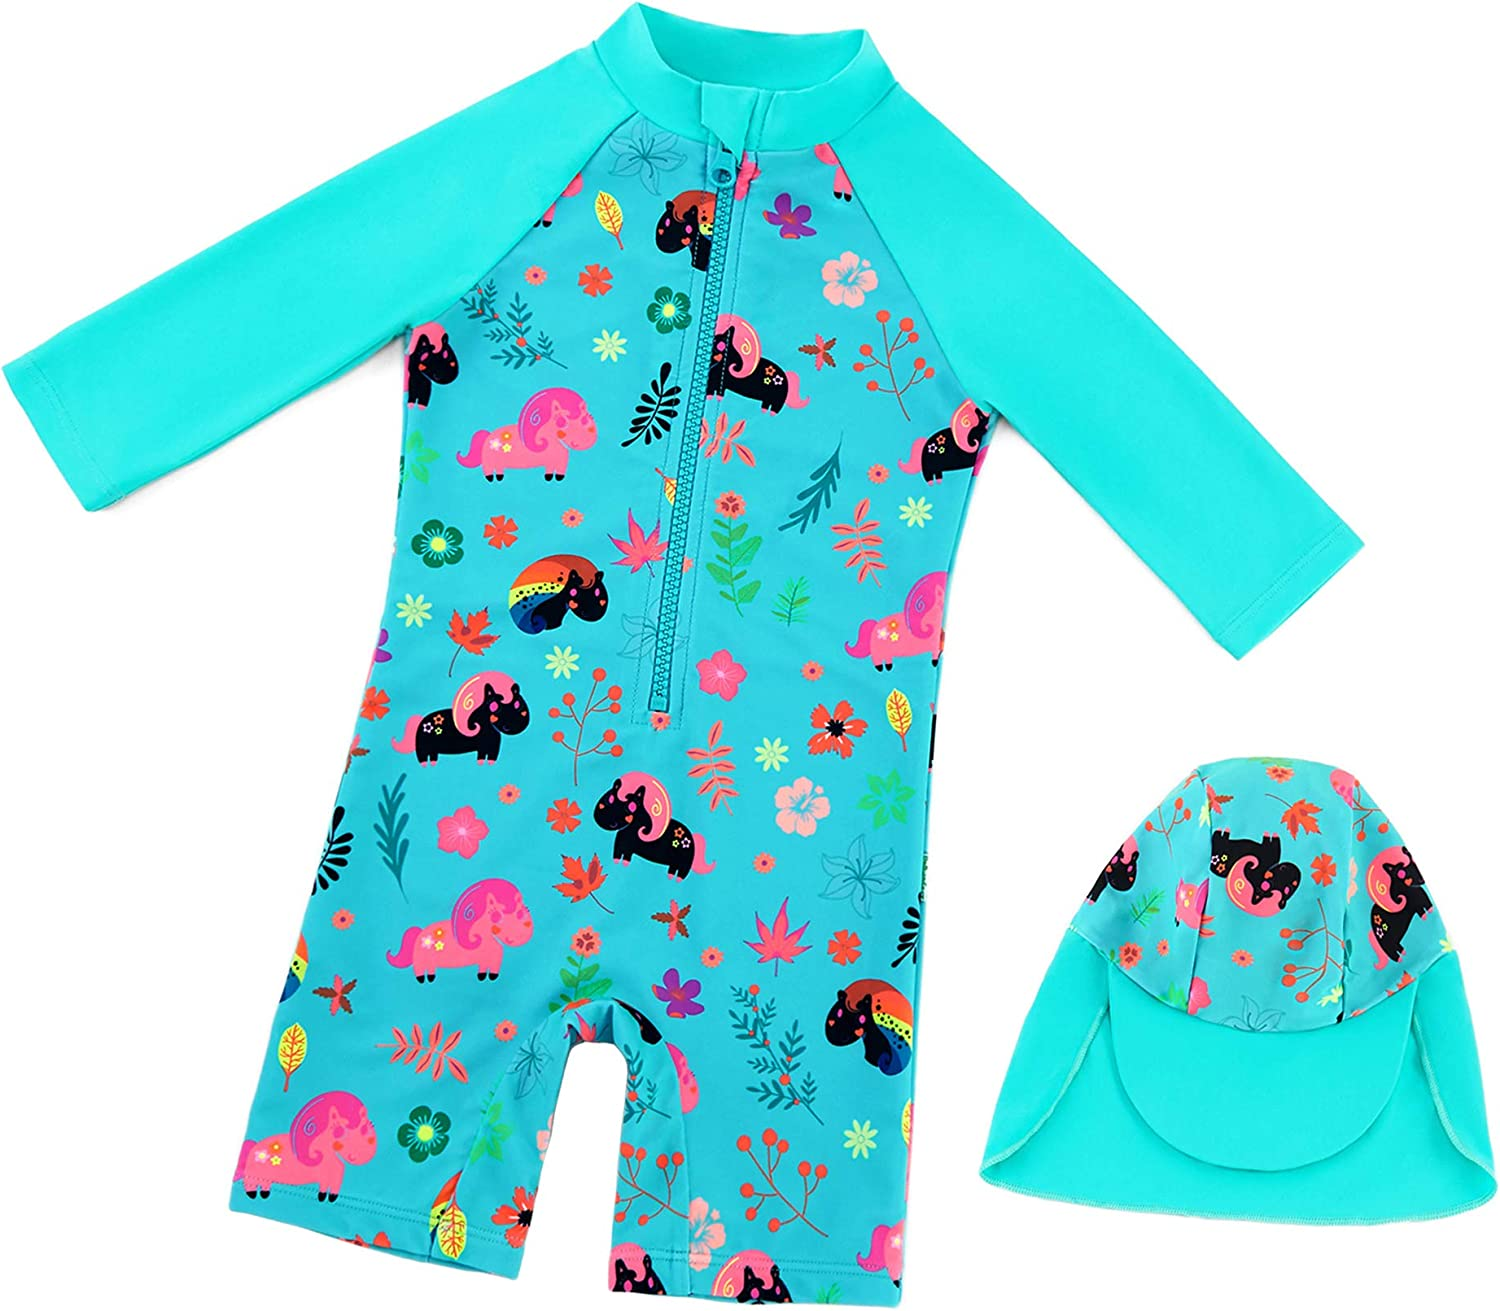 upandfast Baby Girls' Swimwear Sunsuits One Piece Swimsuits with Sun Hat UPF 50+ Sun Protection Toddler Bathing Suits: Clothing, Shoes & Jewelry